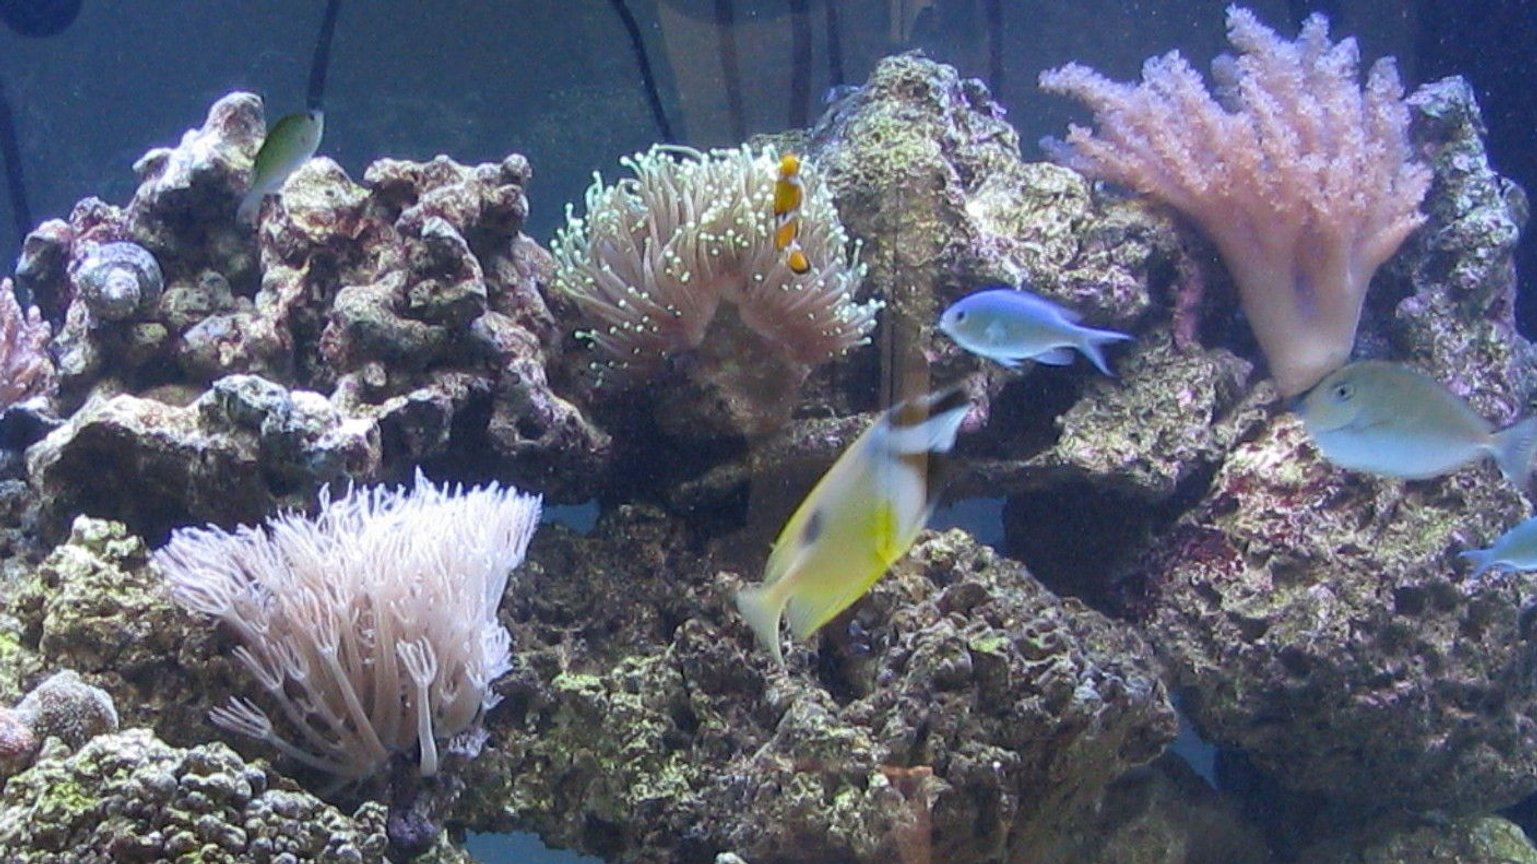 saltwater fish - chromis viridis - blue/green reef chromis stocking in 500 gallons tank - Half of tank due to file size... 3 months